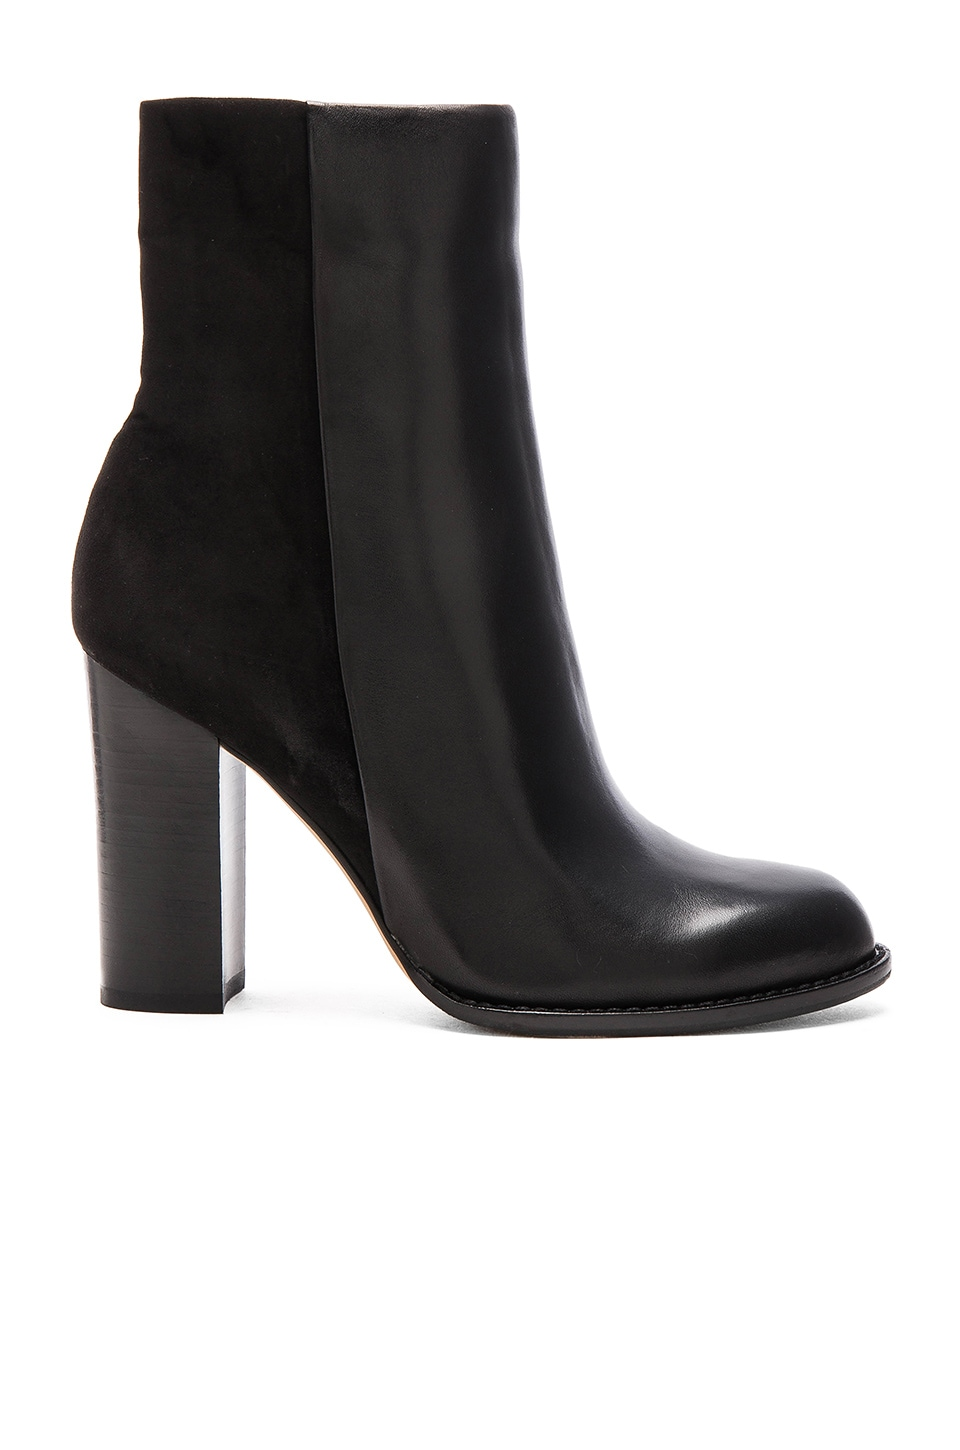 Sam Edelman Reyes Boot in Black Leather